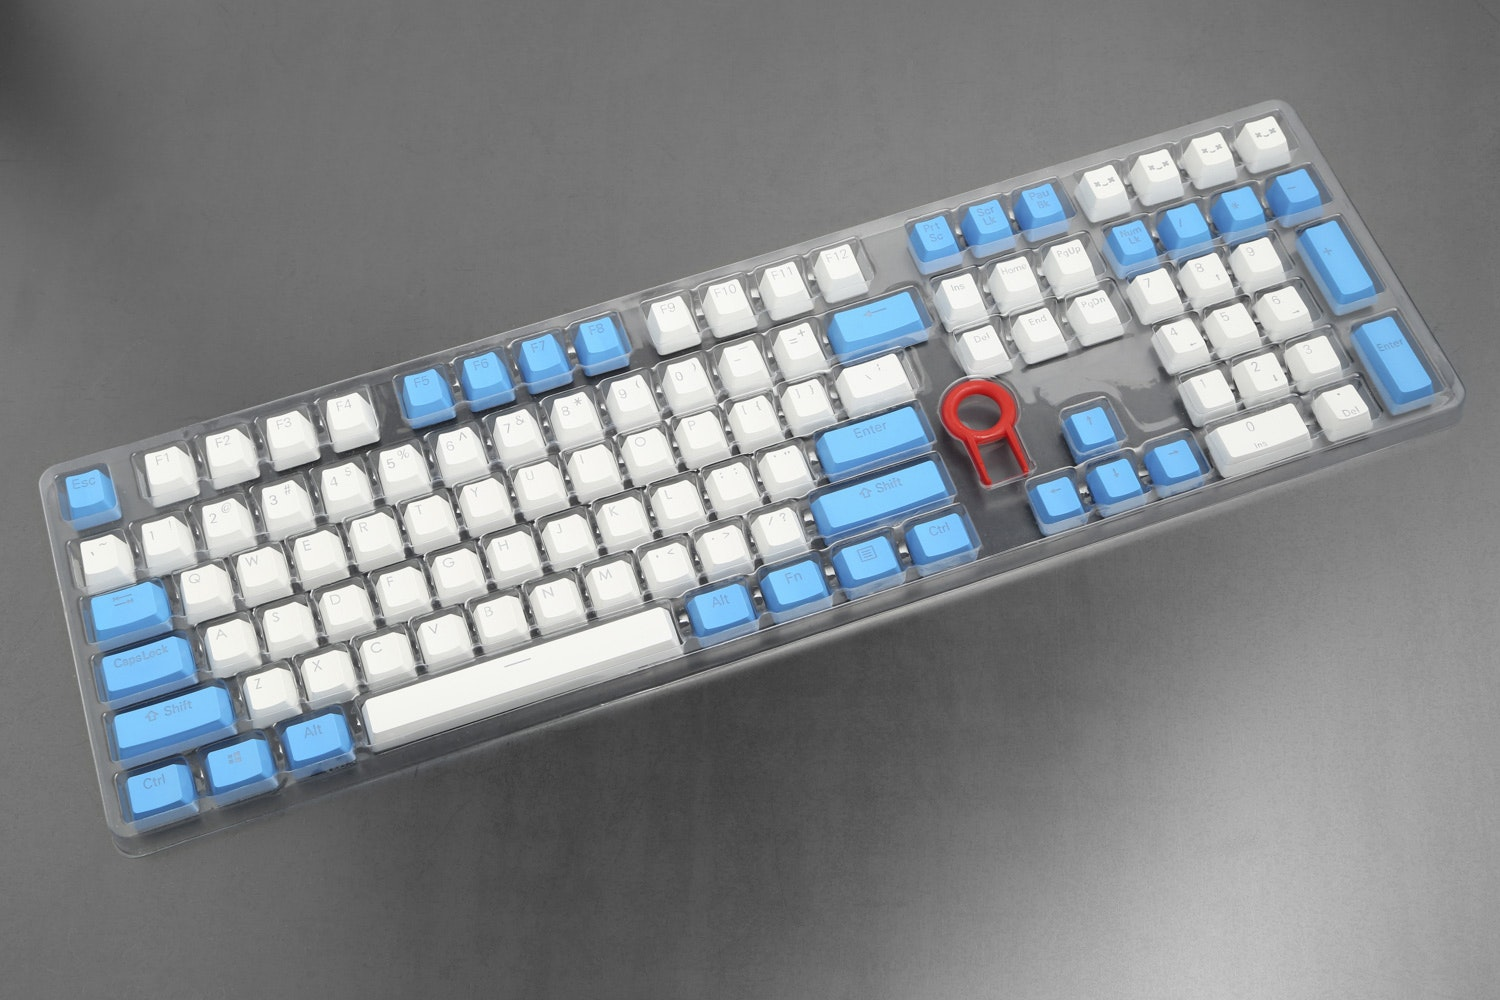 Backlit Doubleshot PBT Keycap Set